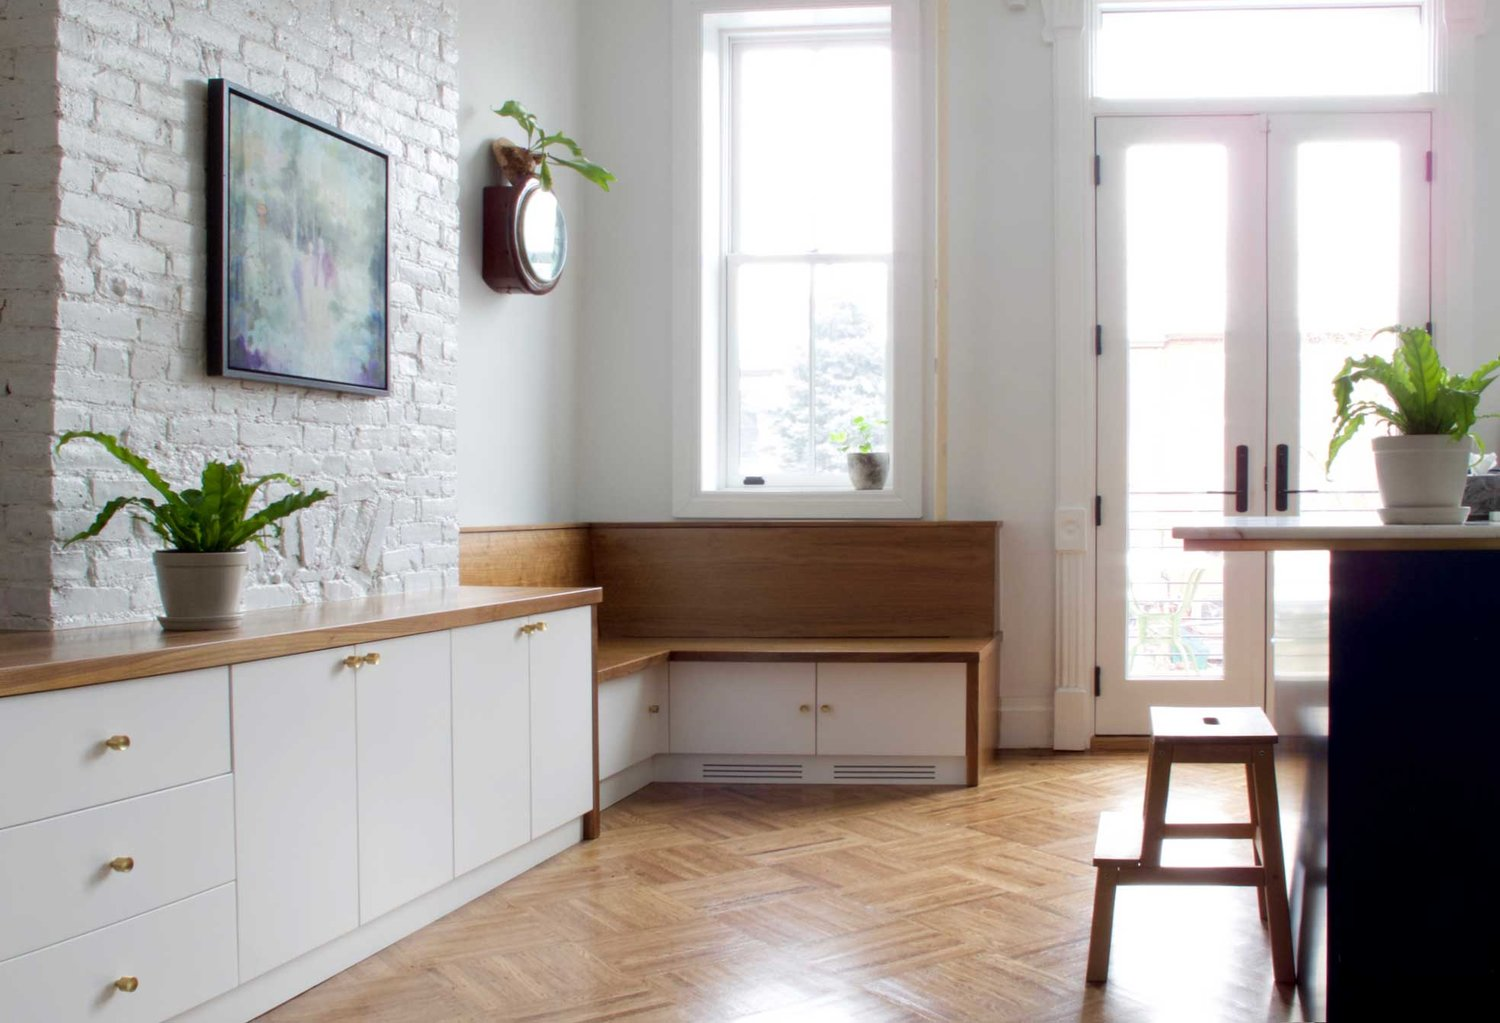 Window Seat Custom Window Seat Benches And Built In Daybeds Nyc Urban